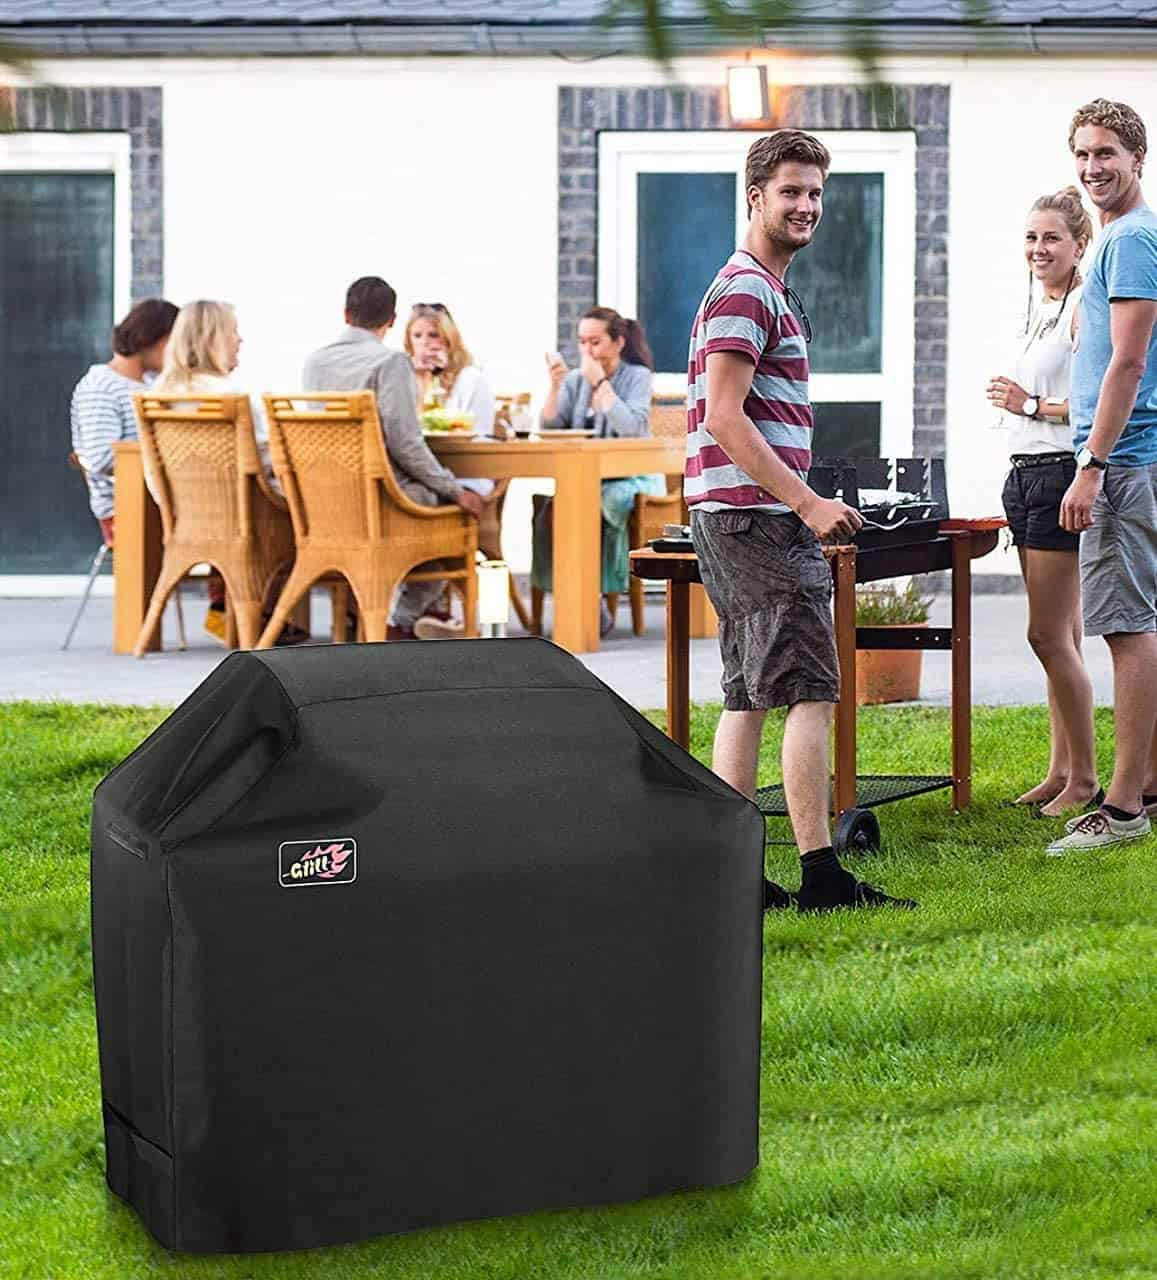 The best overall grill cover: Homitt 58-inch 600D in the garden